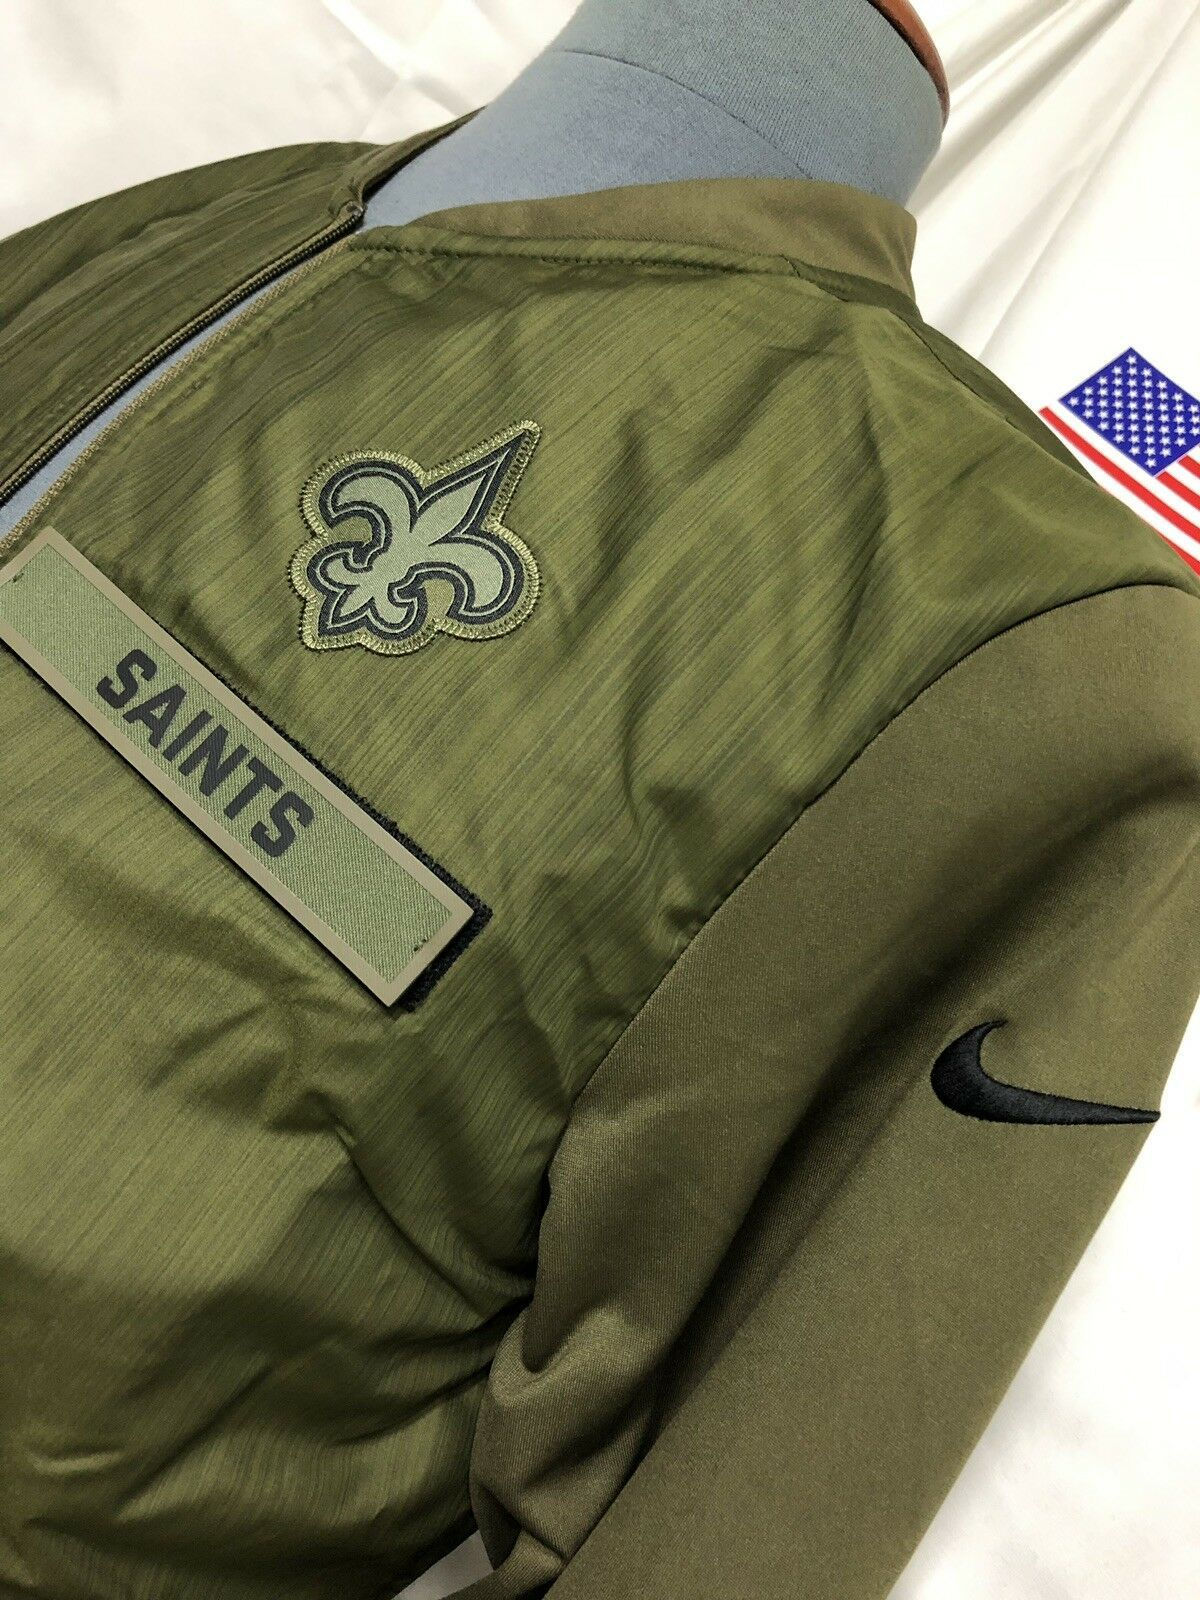 NEW Men/'s New Orleans Saints Salute to Service Sideline Therma Sweatshirt Hoodie